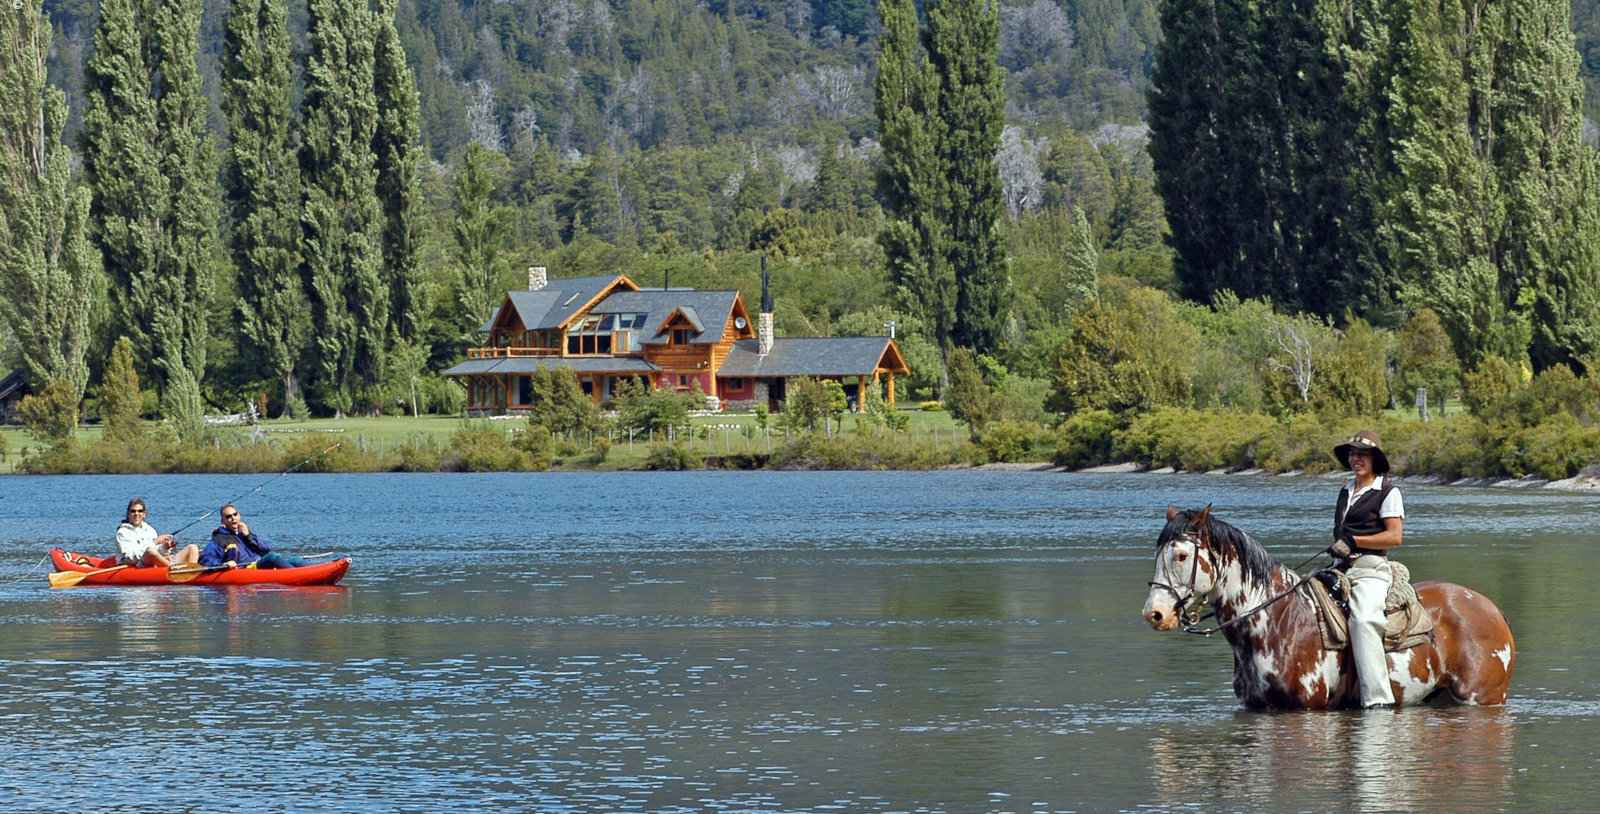 Gay travel to Patagonia - the Sendero Lodge has so many outdoor activities to try.